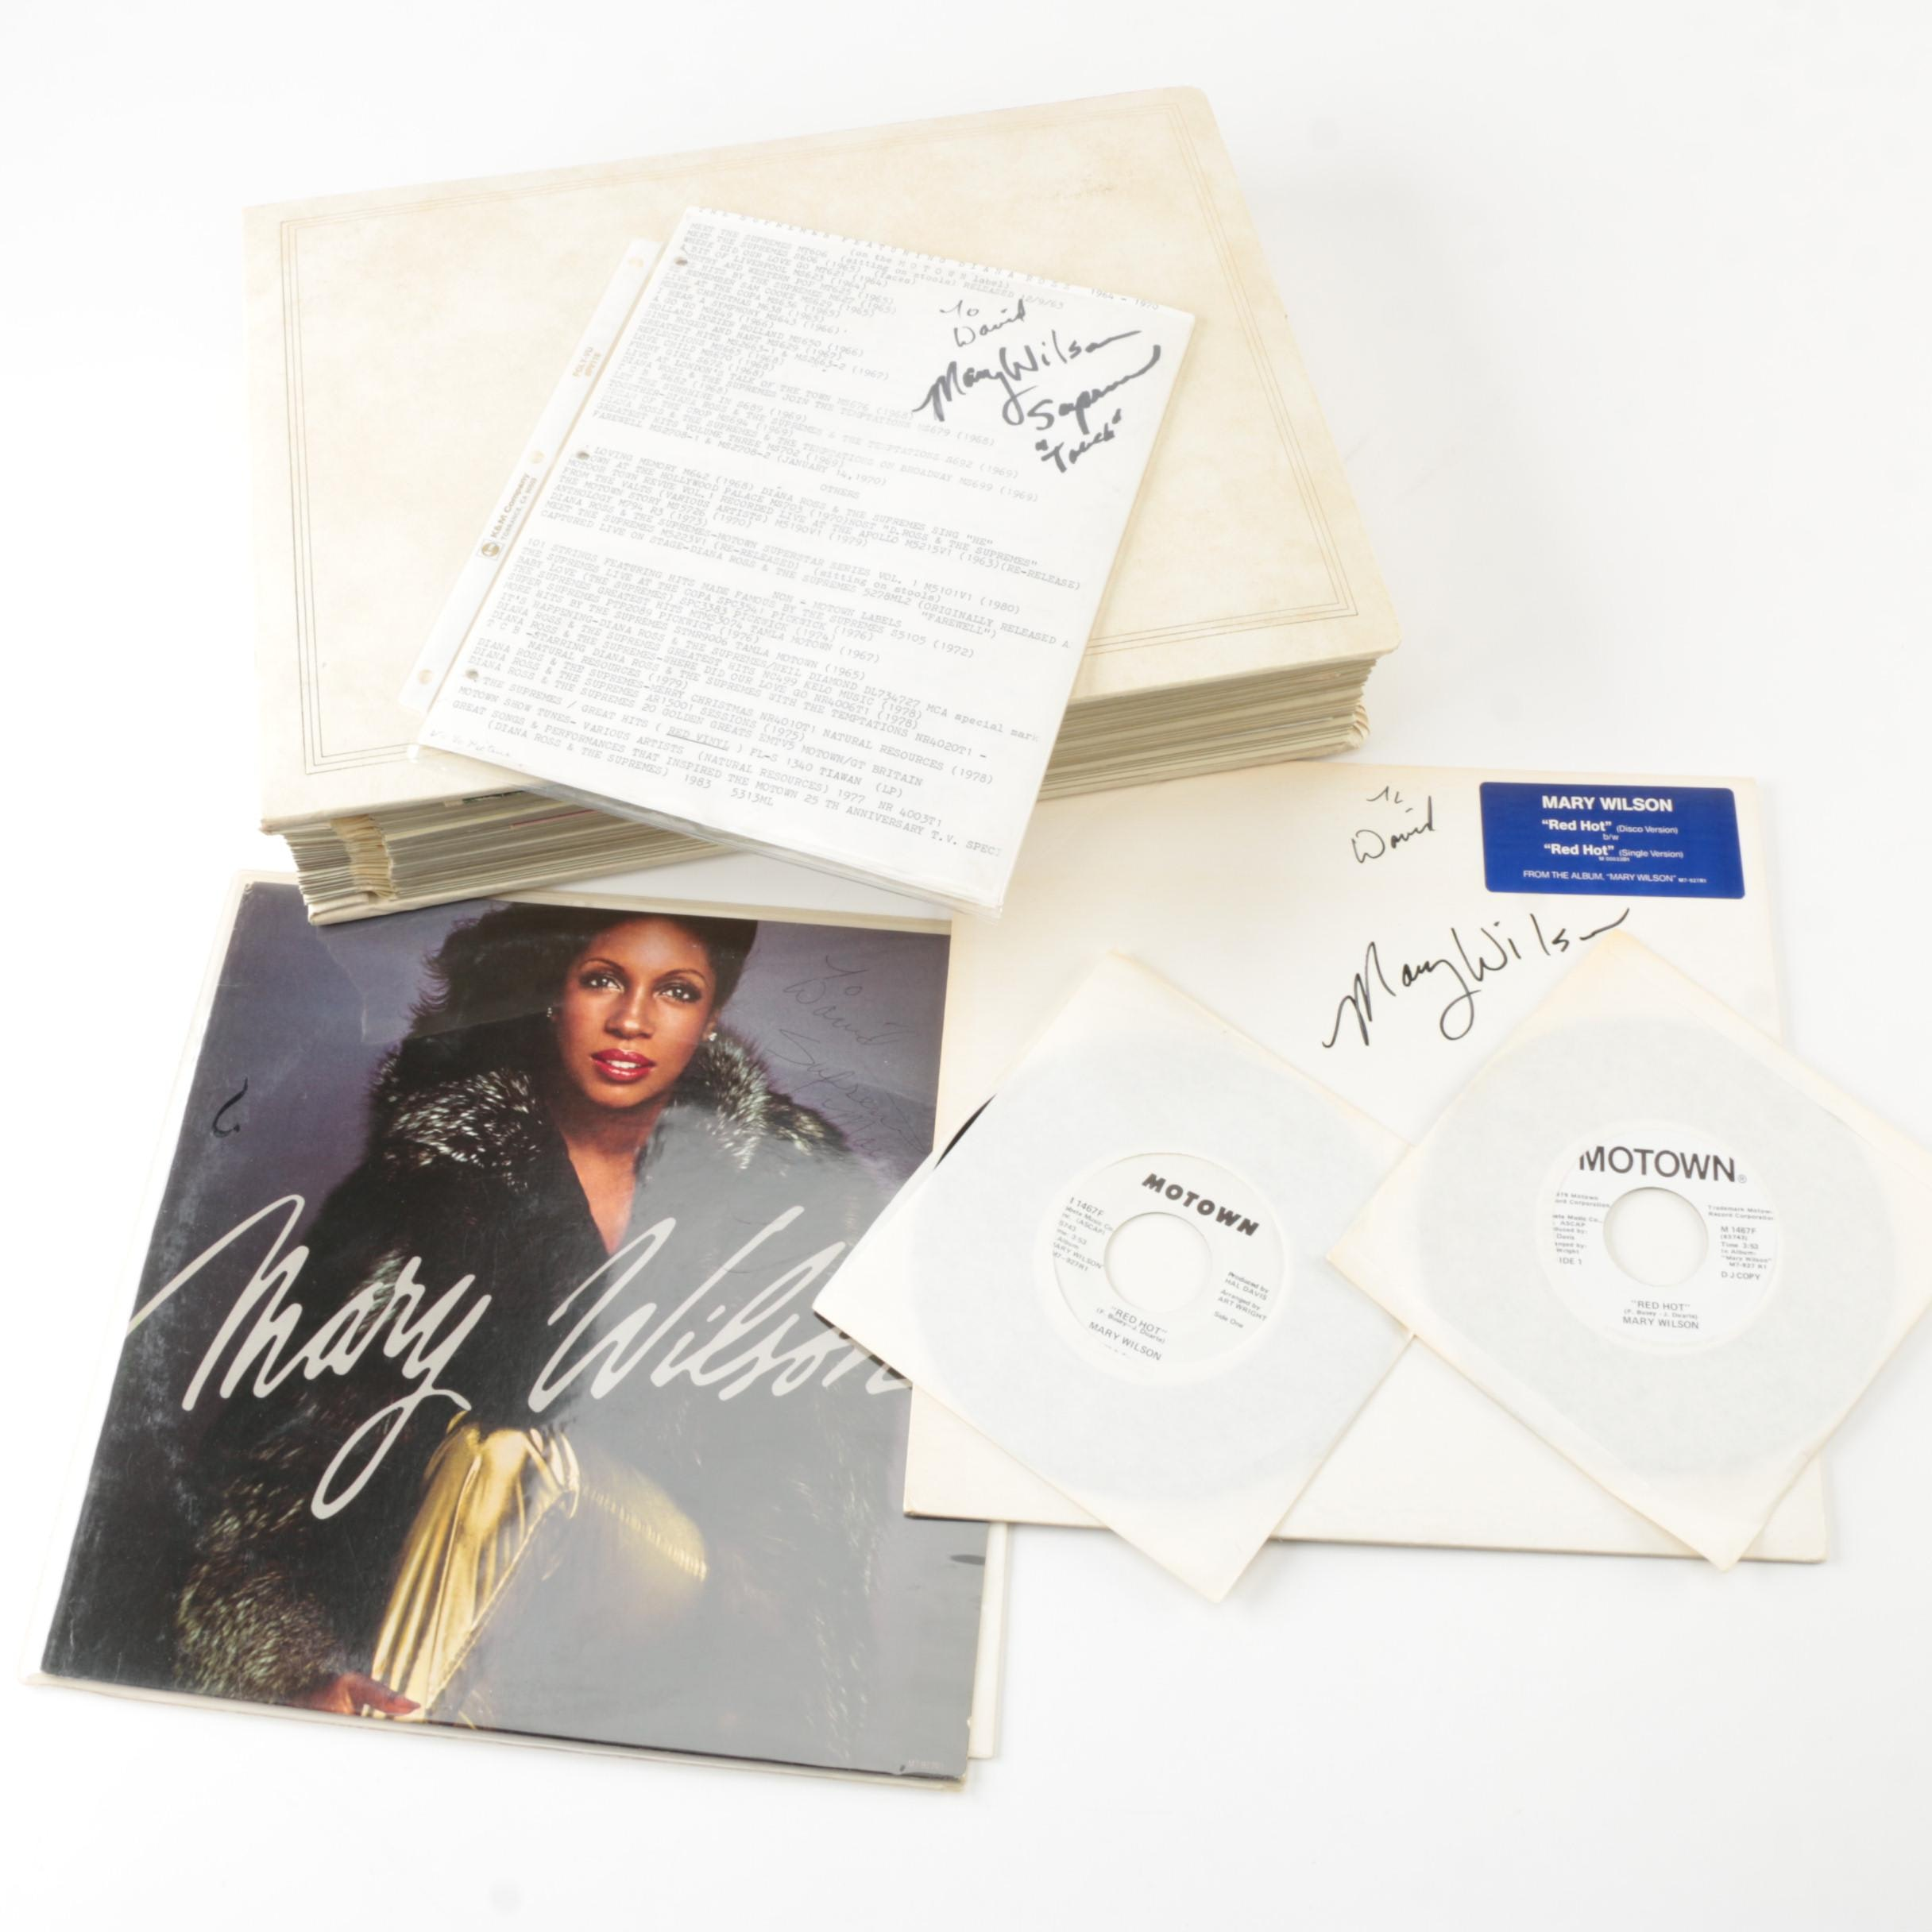 Supremes Records and Memorabilia Including Mary Wilson Autographs